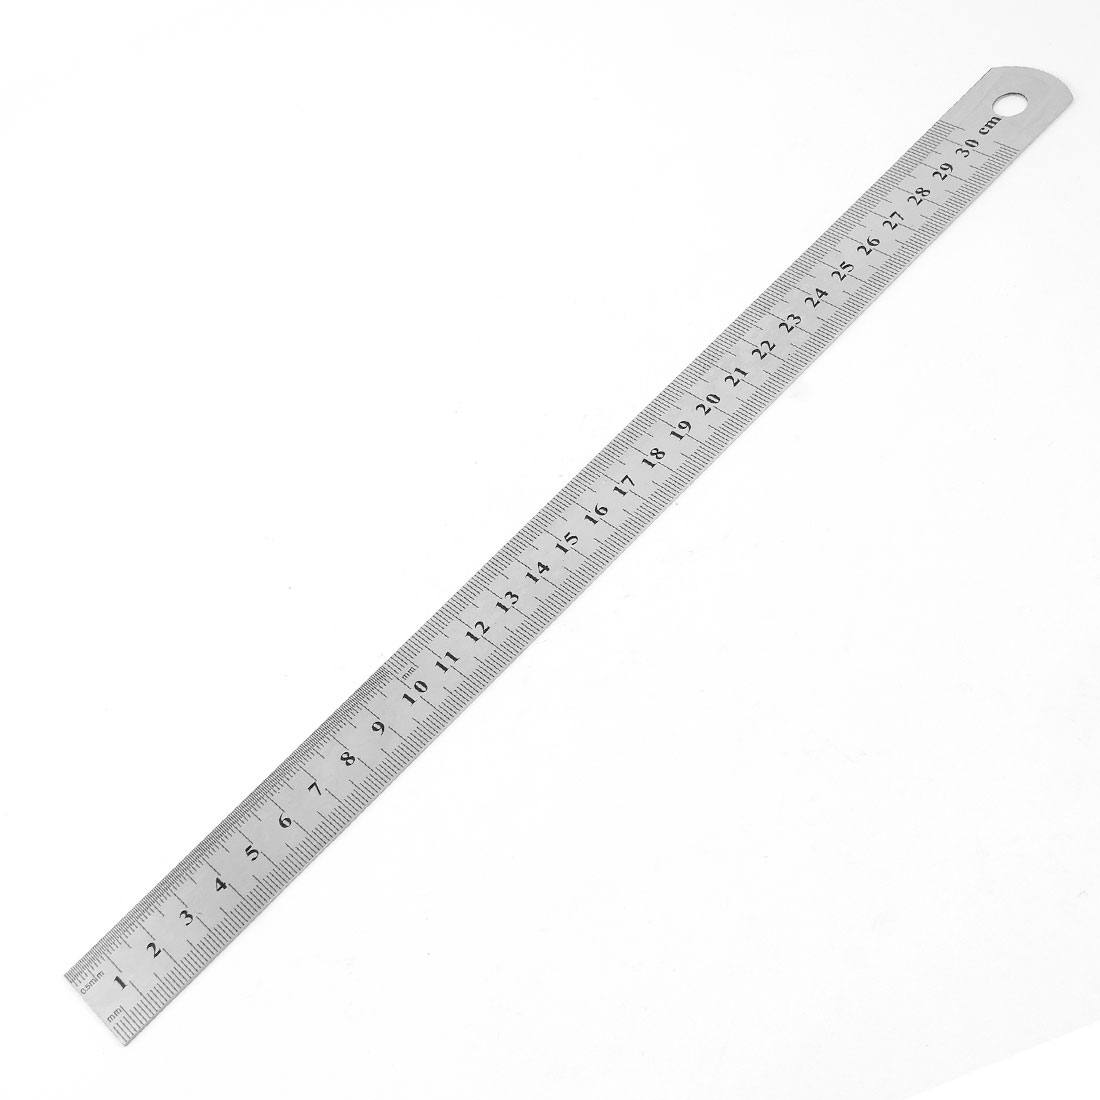 Schools Office 30cm Measurement Dual Sides Straight Rulers